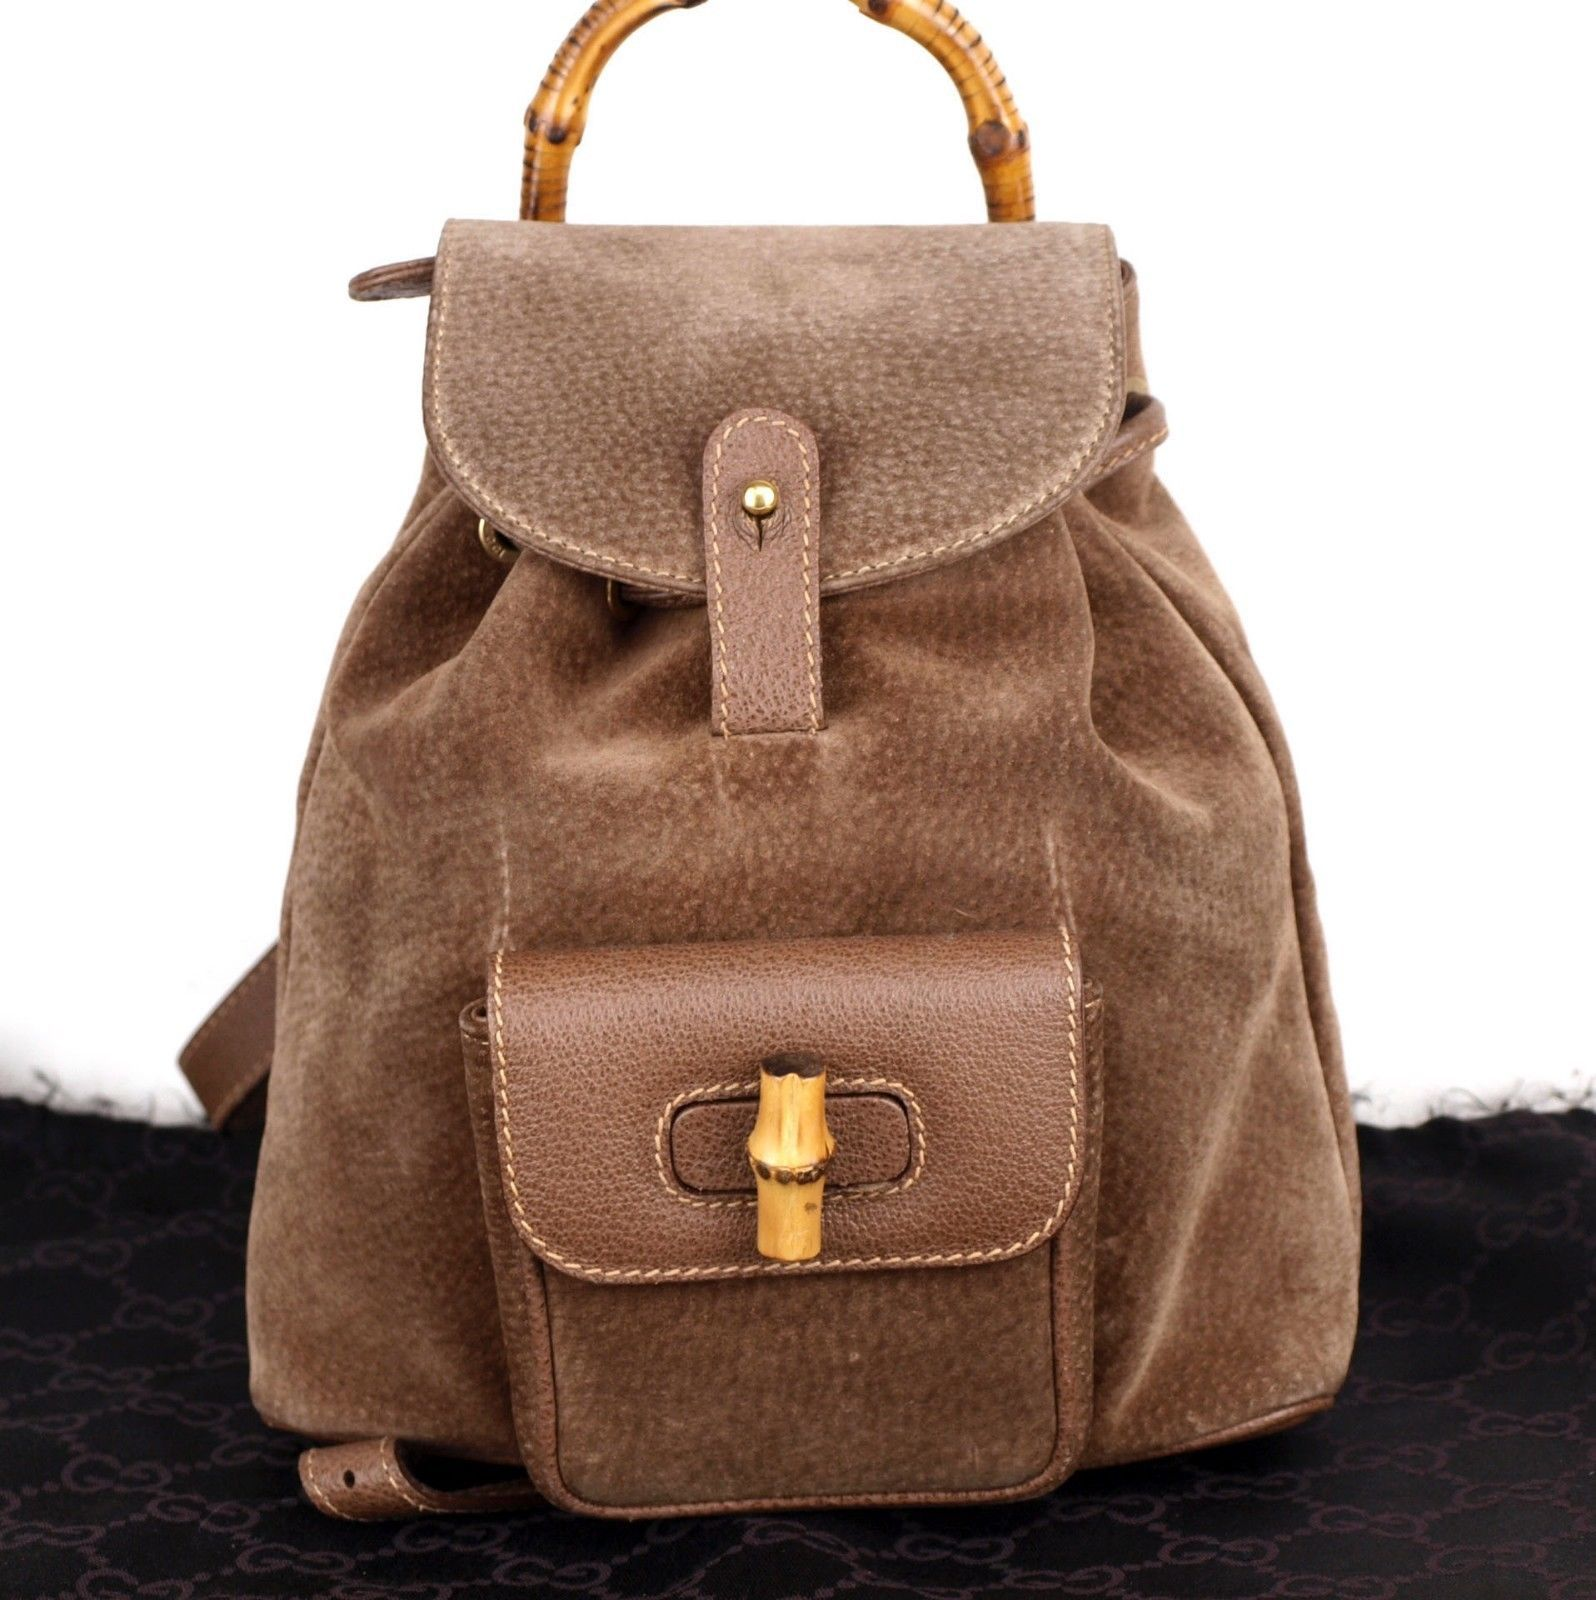 8601ca1bbd9 57. 57. Previous. Authentic GUCCI Bamboo Brown Suede Leather Backpack Bag  Hand Bag Italy Vintage